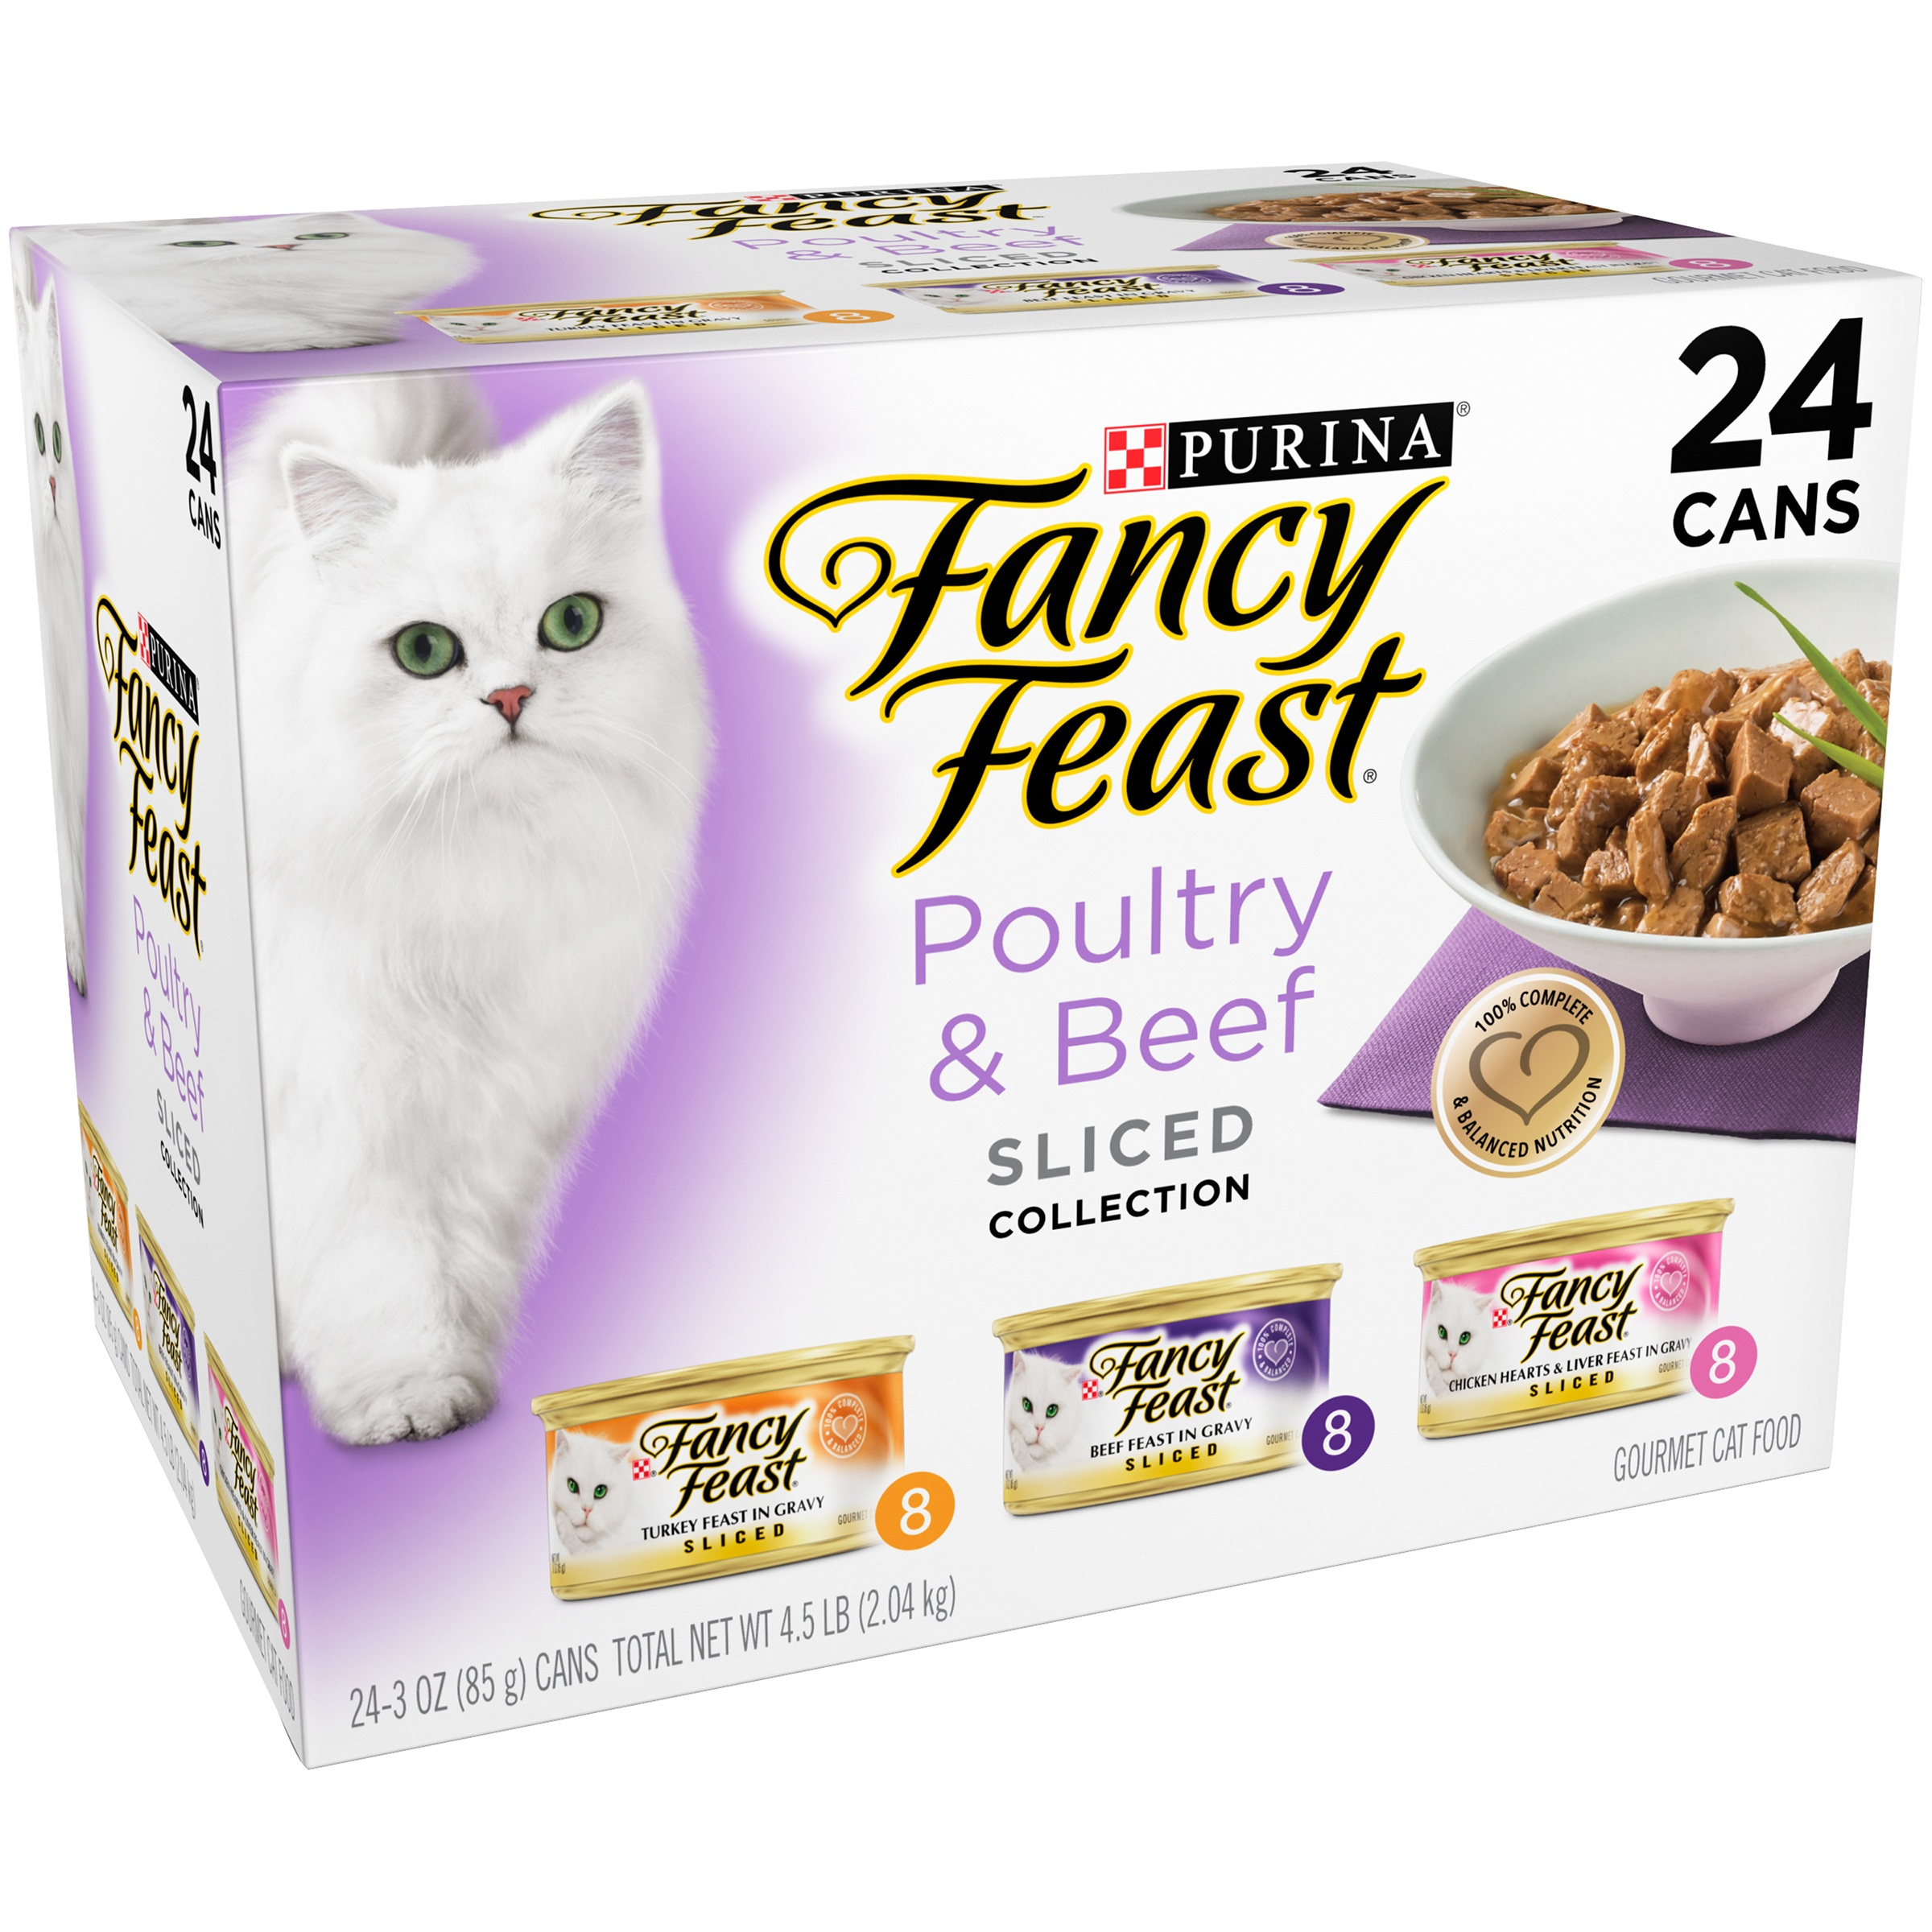 Purina Fancy Feast Sliced Poultry & Beef Collection Wet Cat Food- (24) 3-oz. Cans